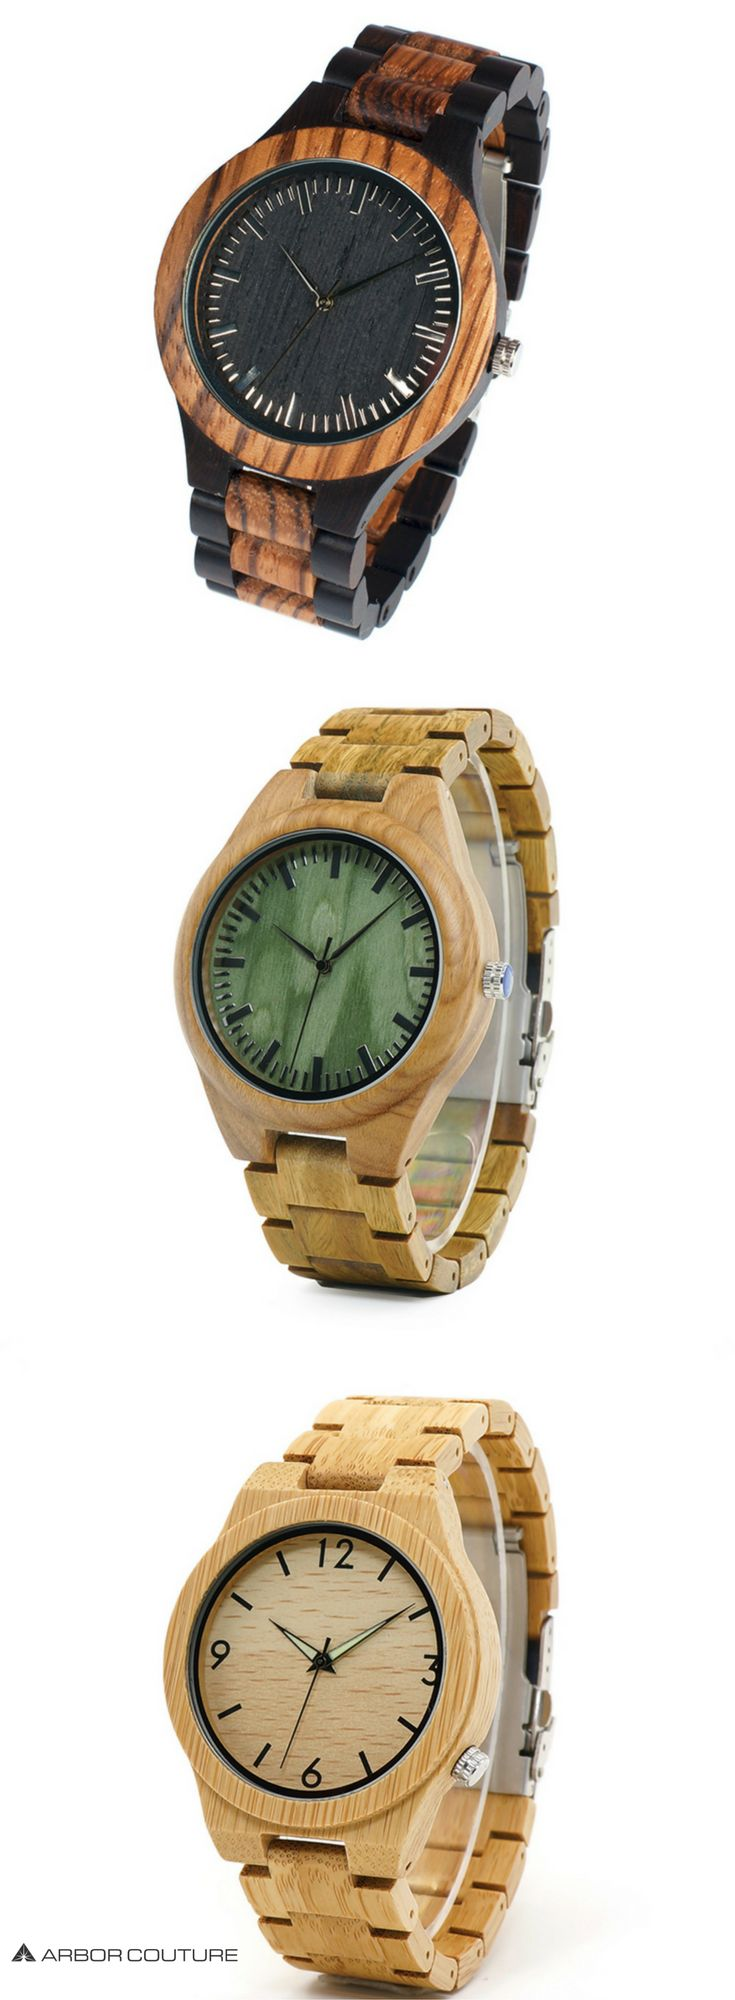 Premium, high-quality men's watches handcrafted from 100% real wood & bamboo | www.arborcouture.com | men's watches under $200, men's watches under $200 style, men's watches under $200 fashion, men's watches under $200 leather, men's watches under $200 pr